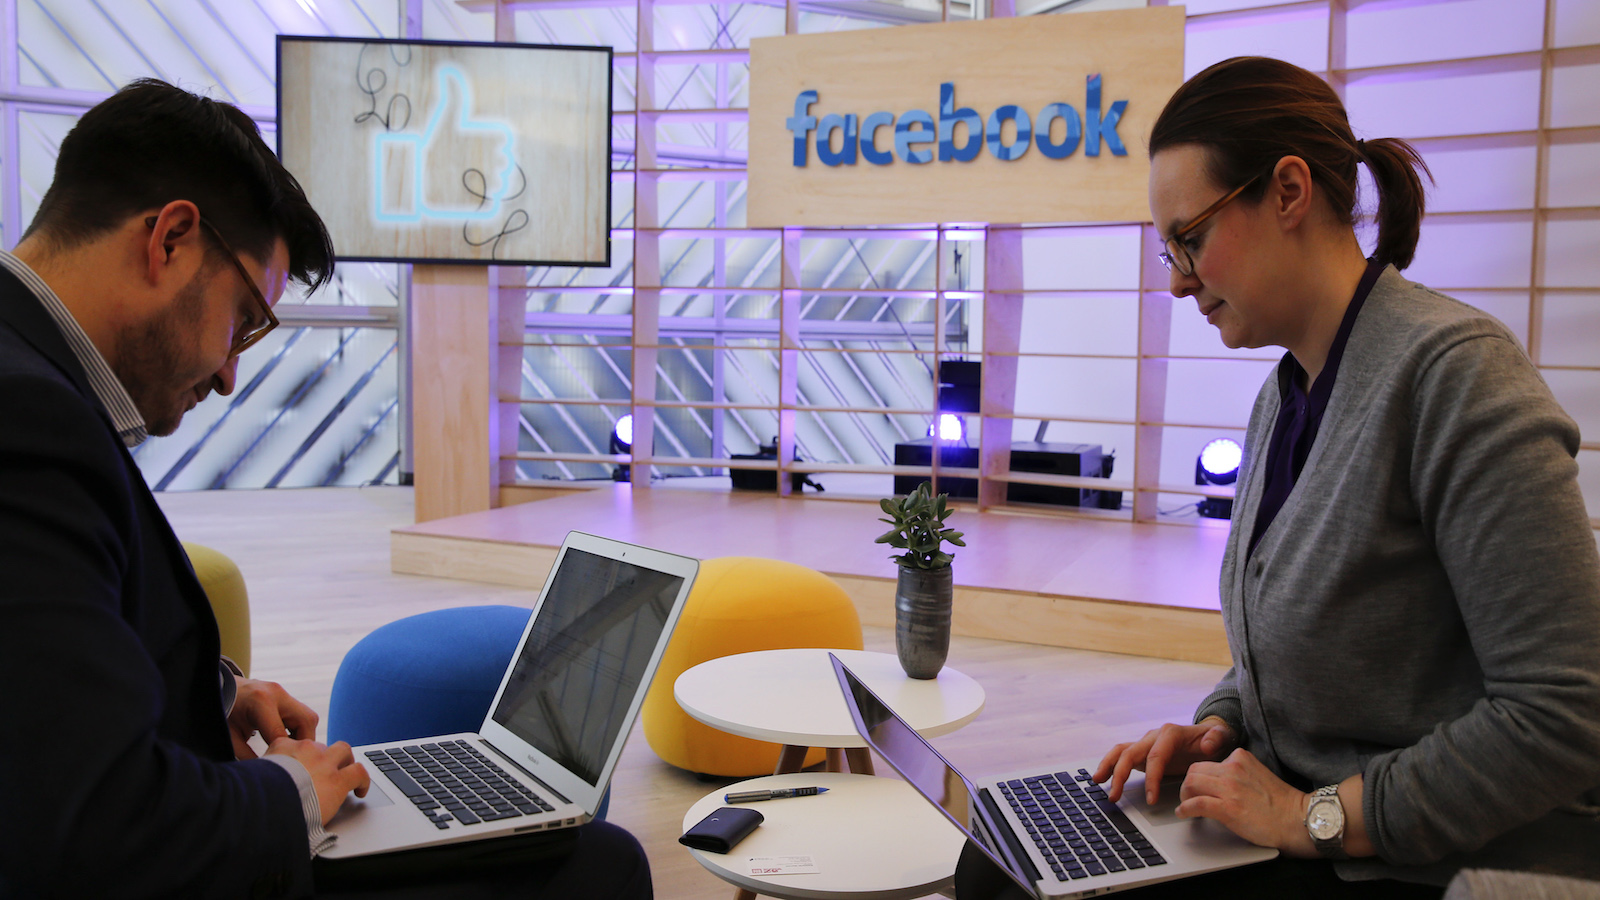 People work with their laptops in front of the Facebook logo at the new Facebook Innovation Hub during a preview media tour in Berlin, Germany, February 24, 2016.